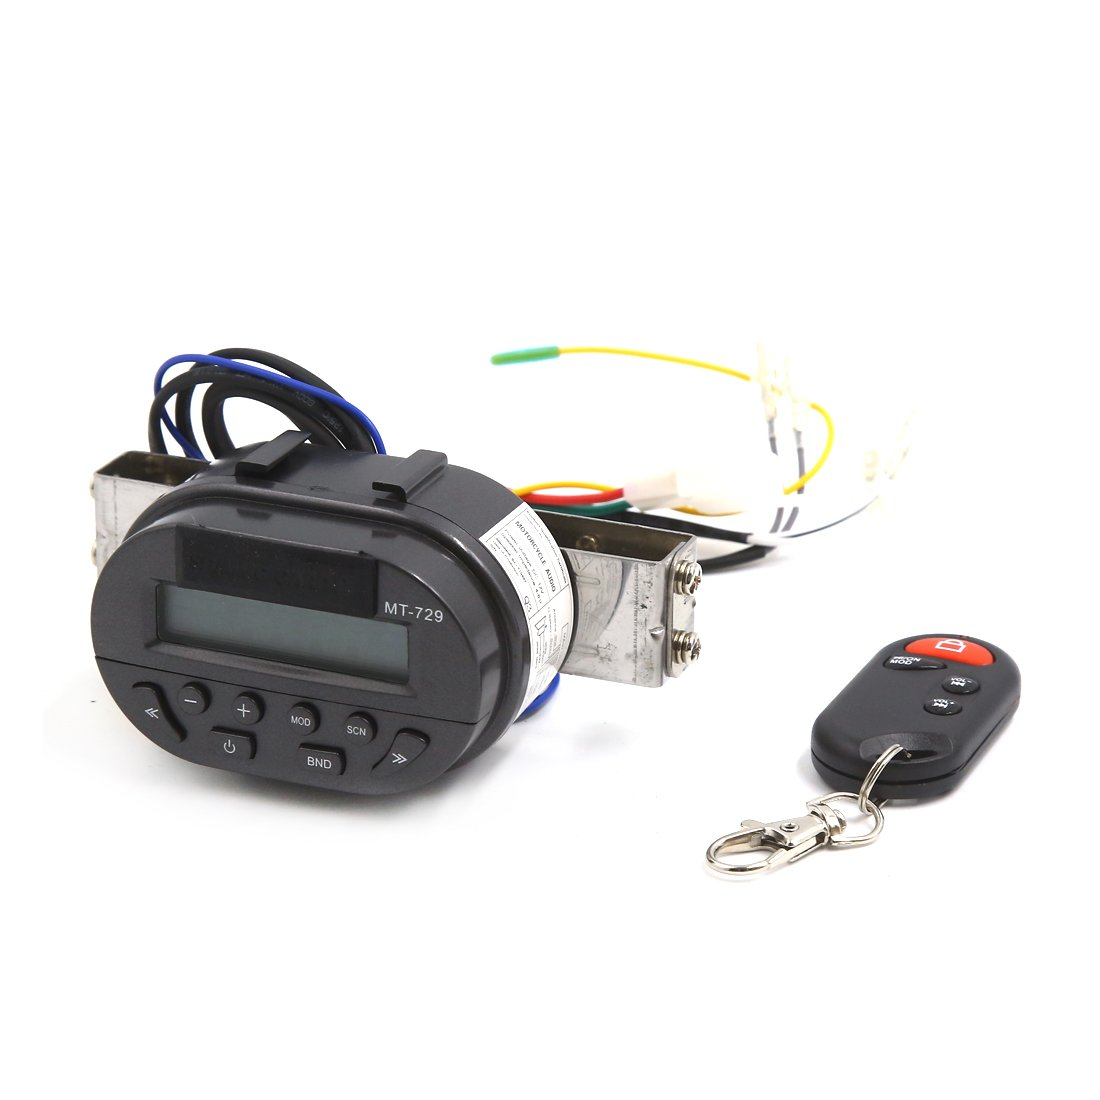 uxcell MT729 Motorcycle Handlebar Mount Audio Radio System MP3 Player Remote Control